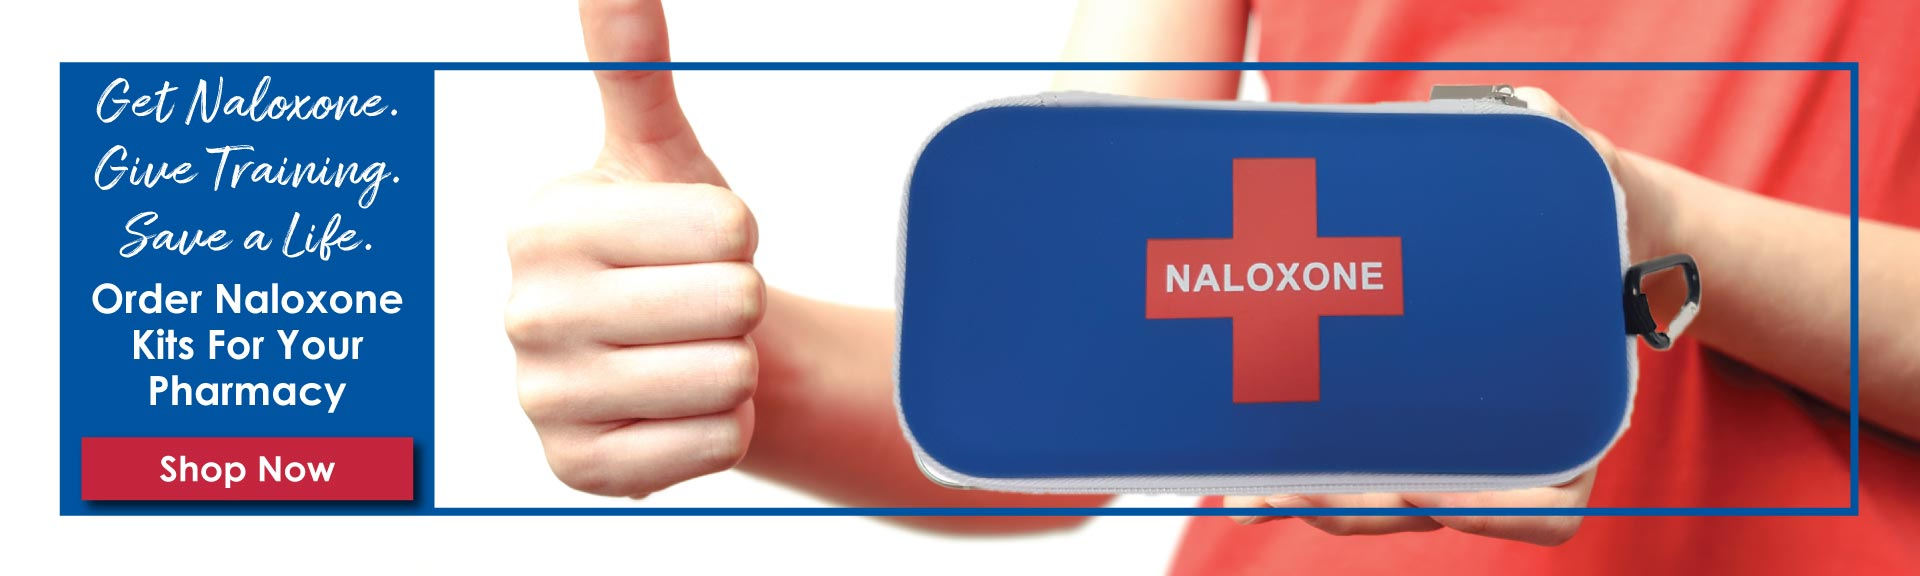 Order Naloxone Kits for your Pharmacy - Get naloxone. Give training. Save a life.